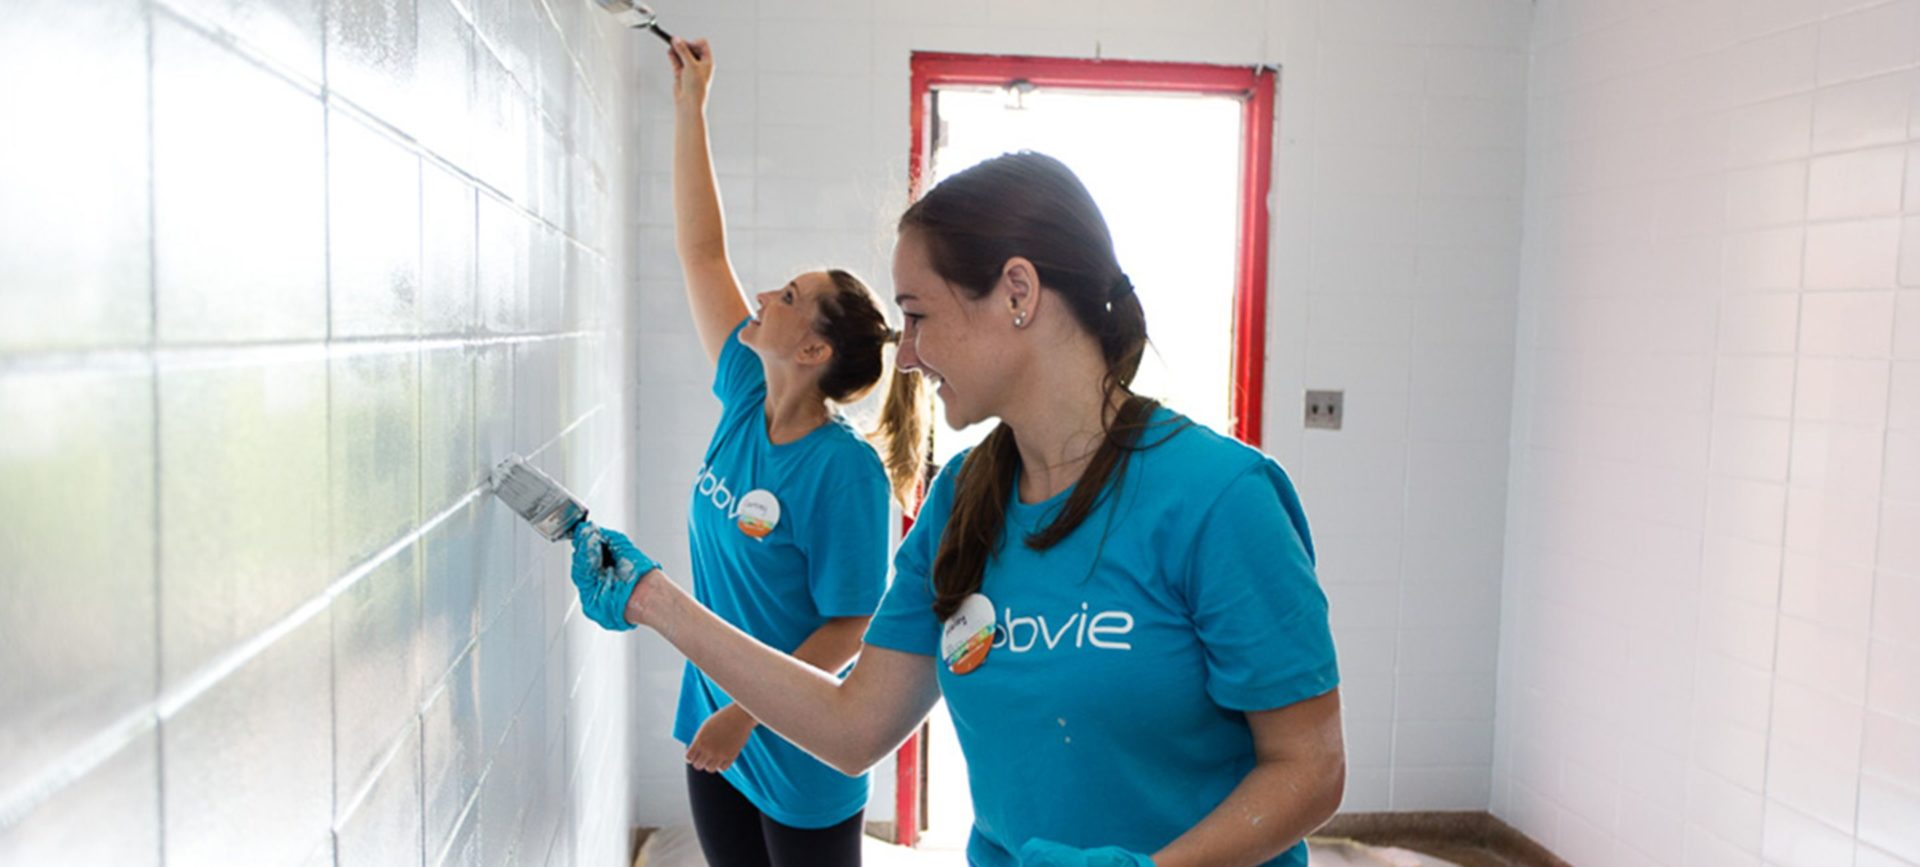 abbvie-girls-painting@2x